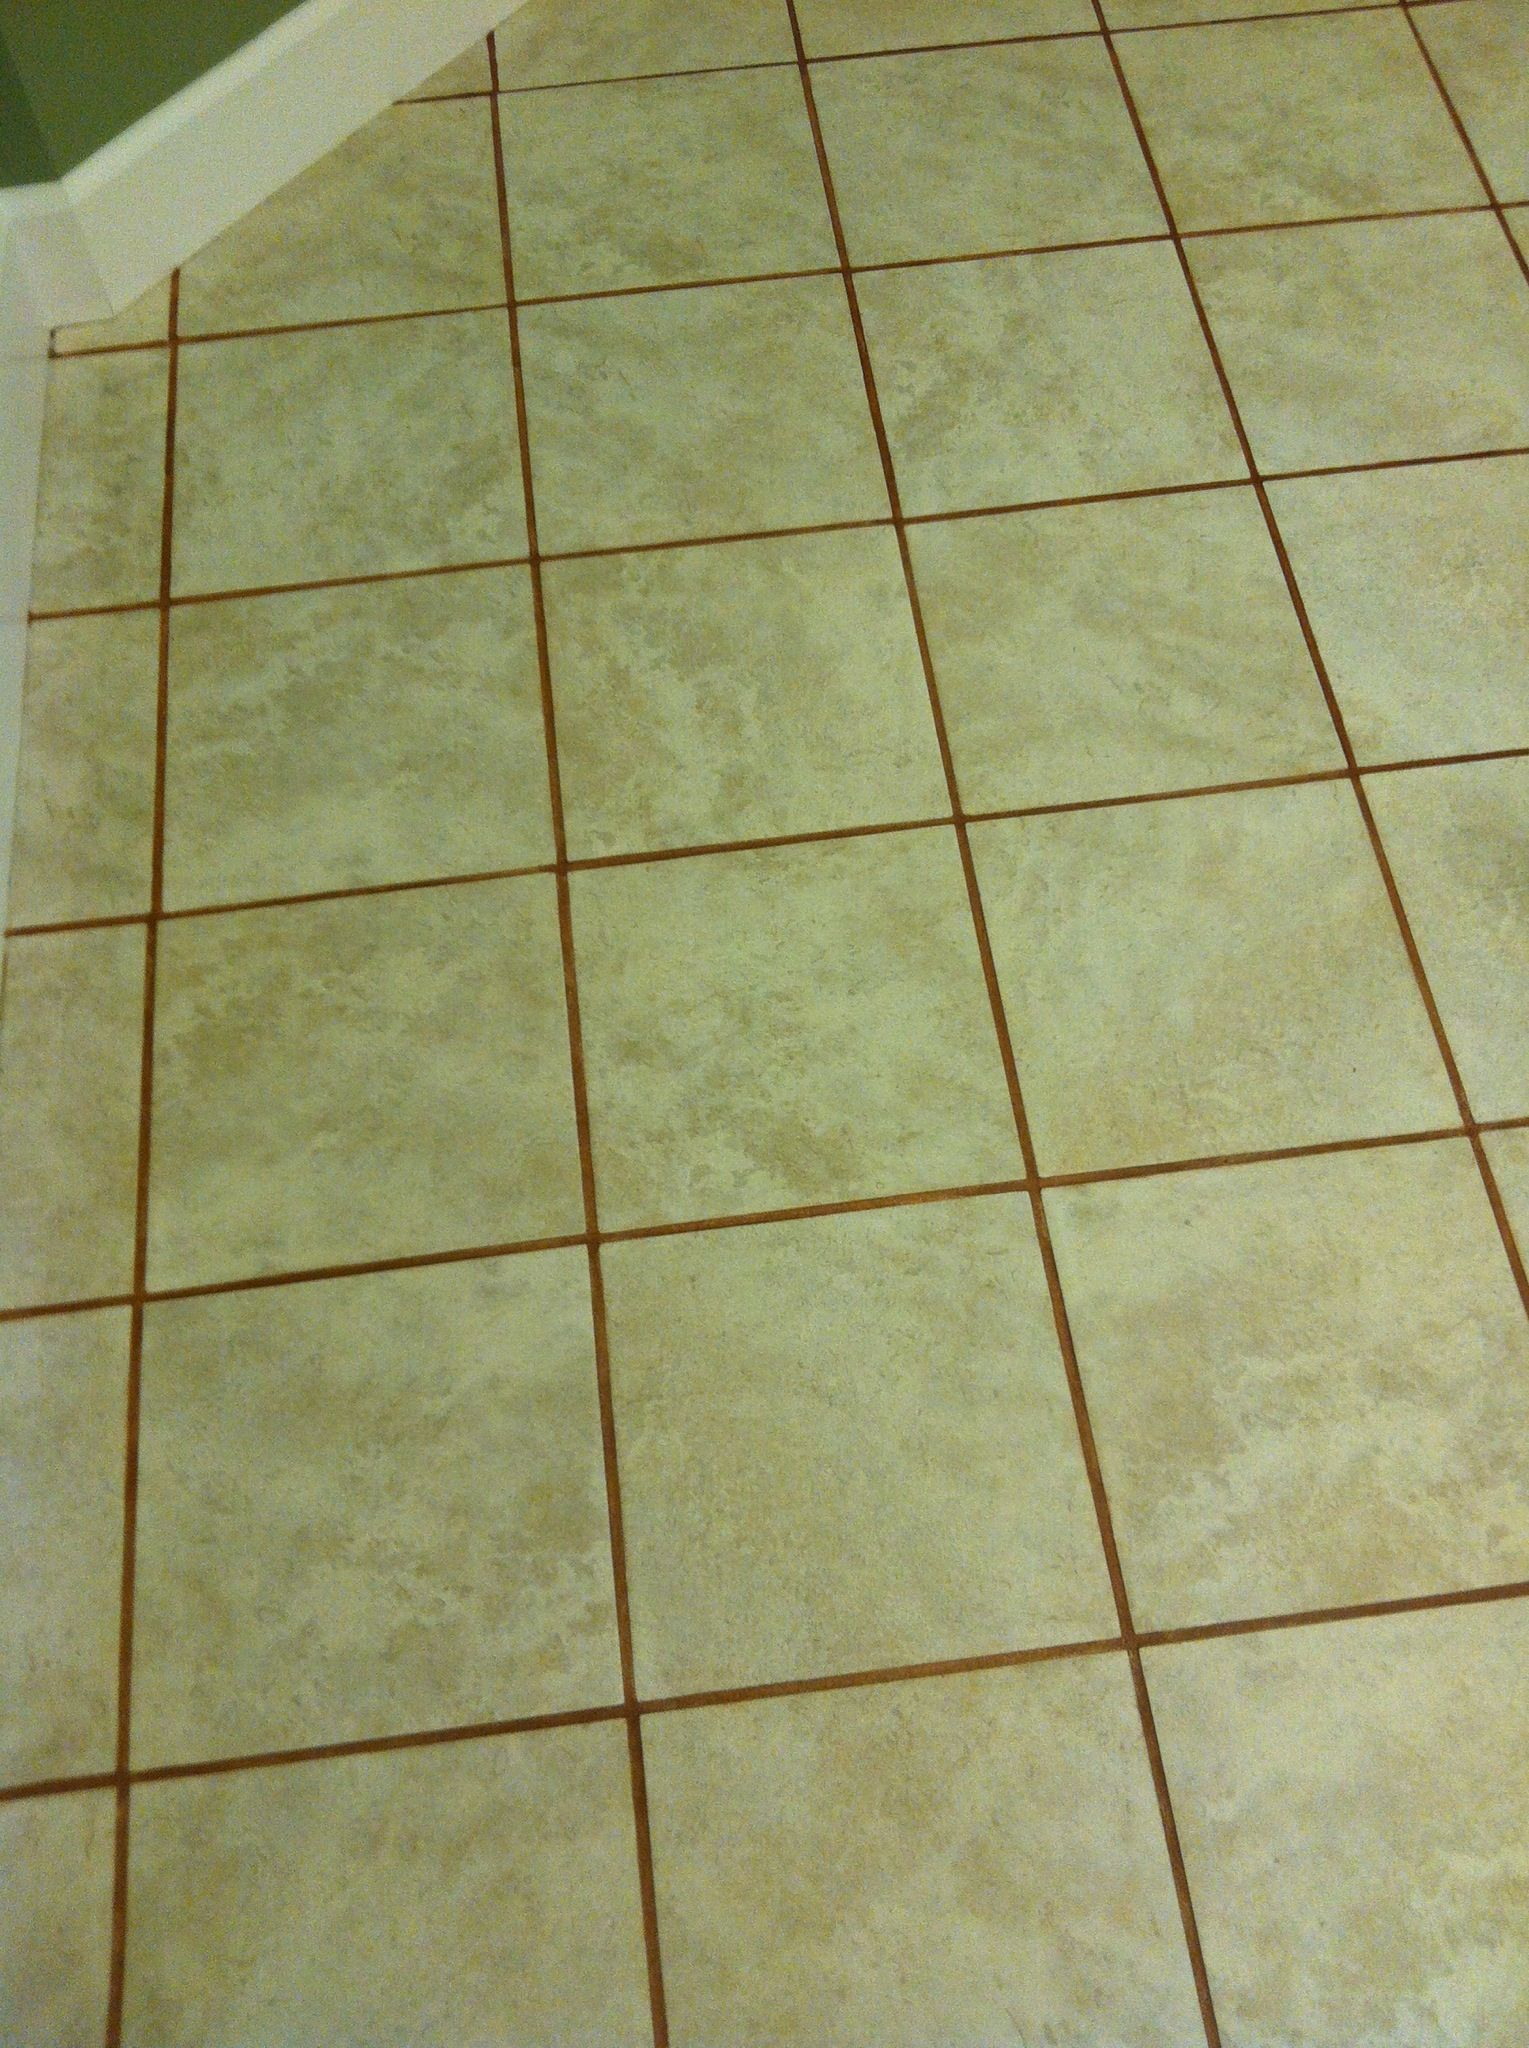 How To Stain Grout Diy Pinterest Grout Terra Cotta And Bottle